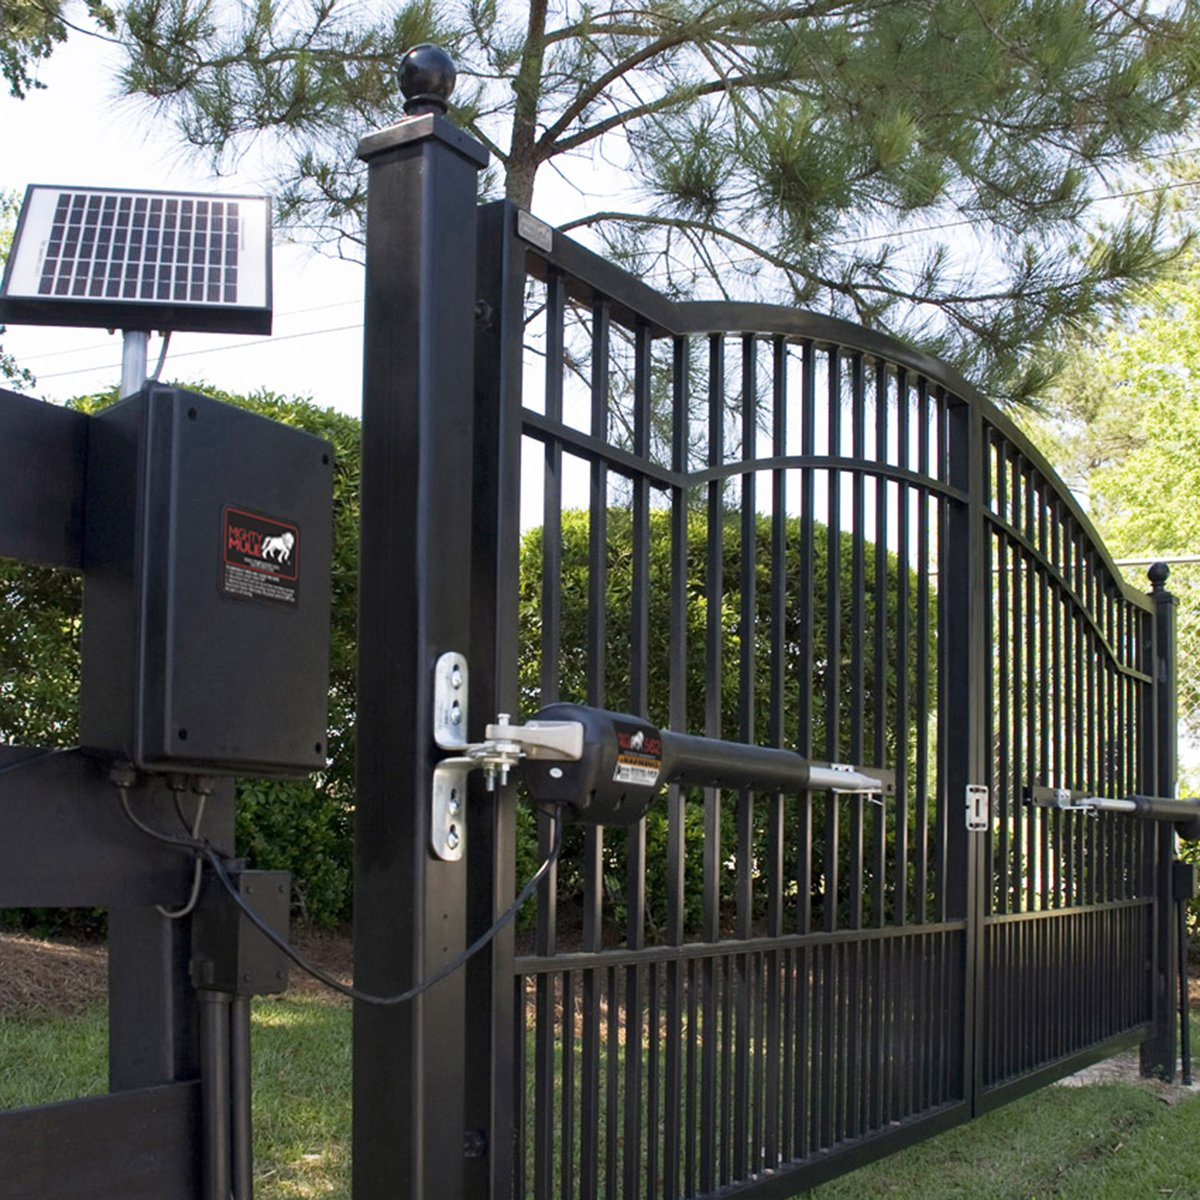 Mighty Mule MM562 Automatic Gate Opener for Heavy Duty Dual Swing Gates for 18' Long or 850 lb by Mighty Mule (Image #5)